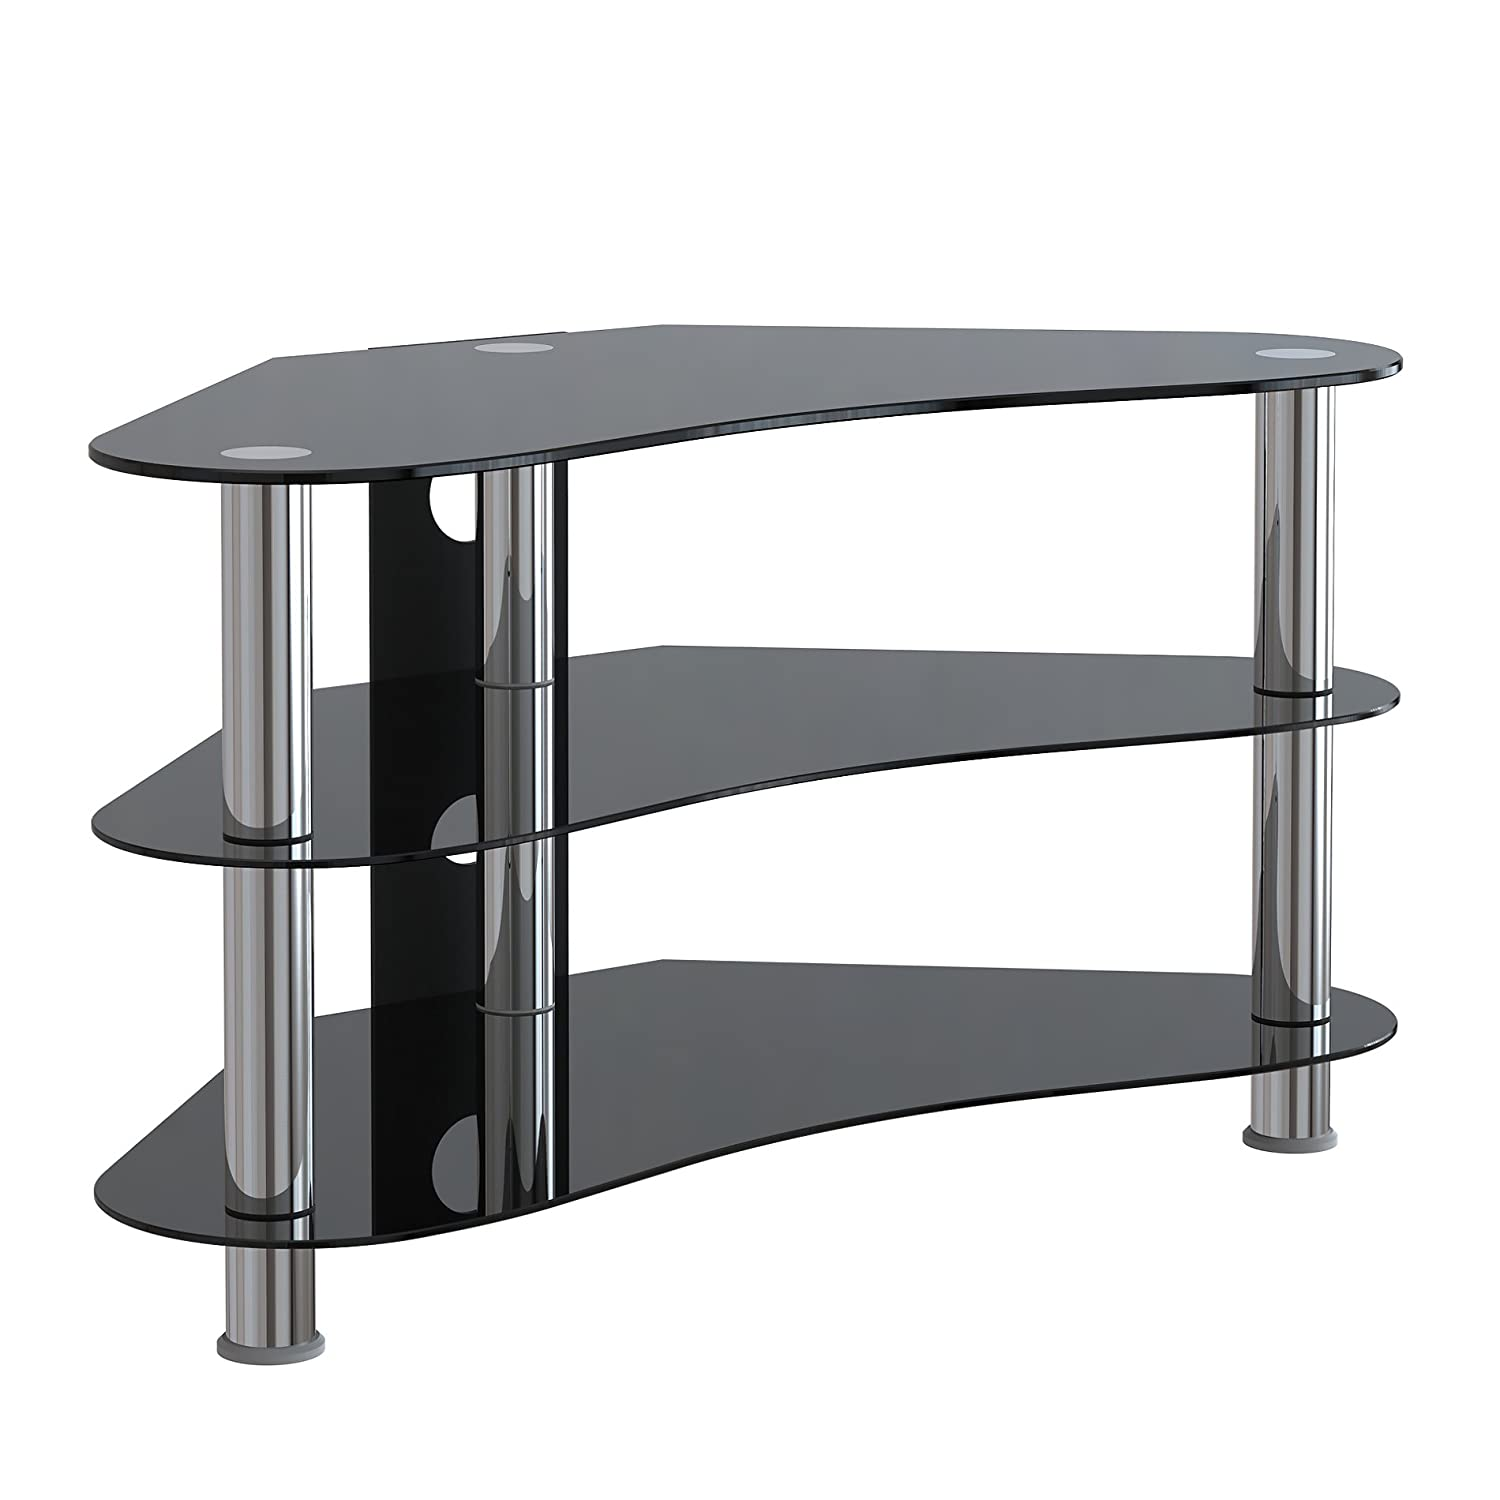 Corner tv unit stand console entertainment unit black for Miroir noir dvd